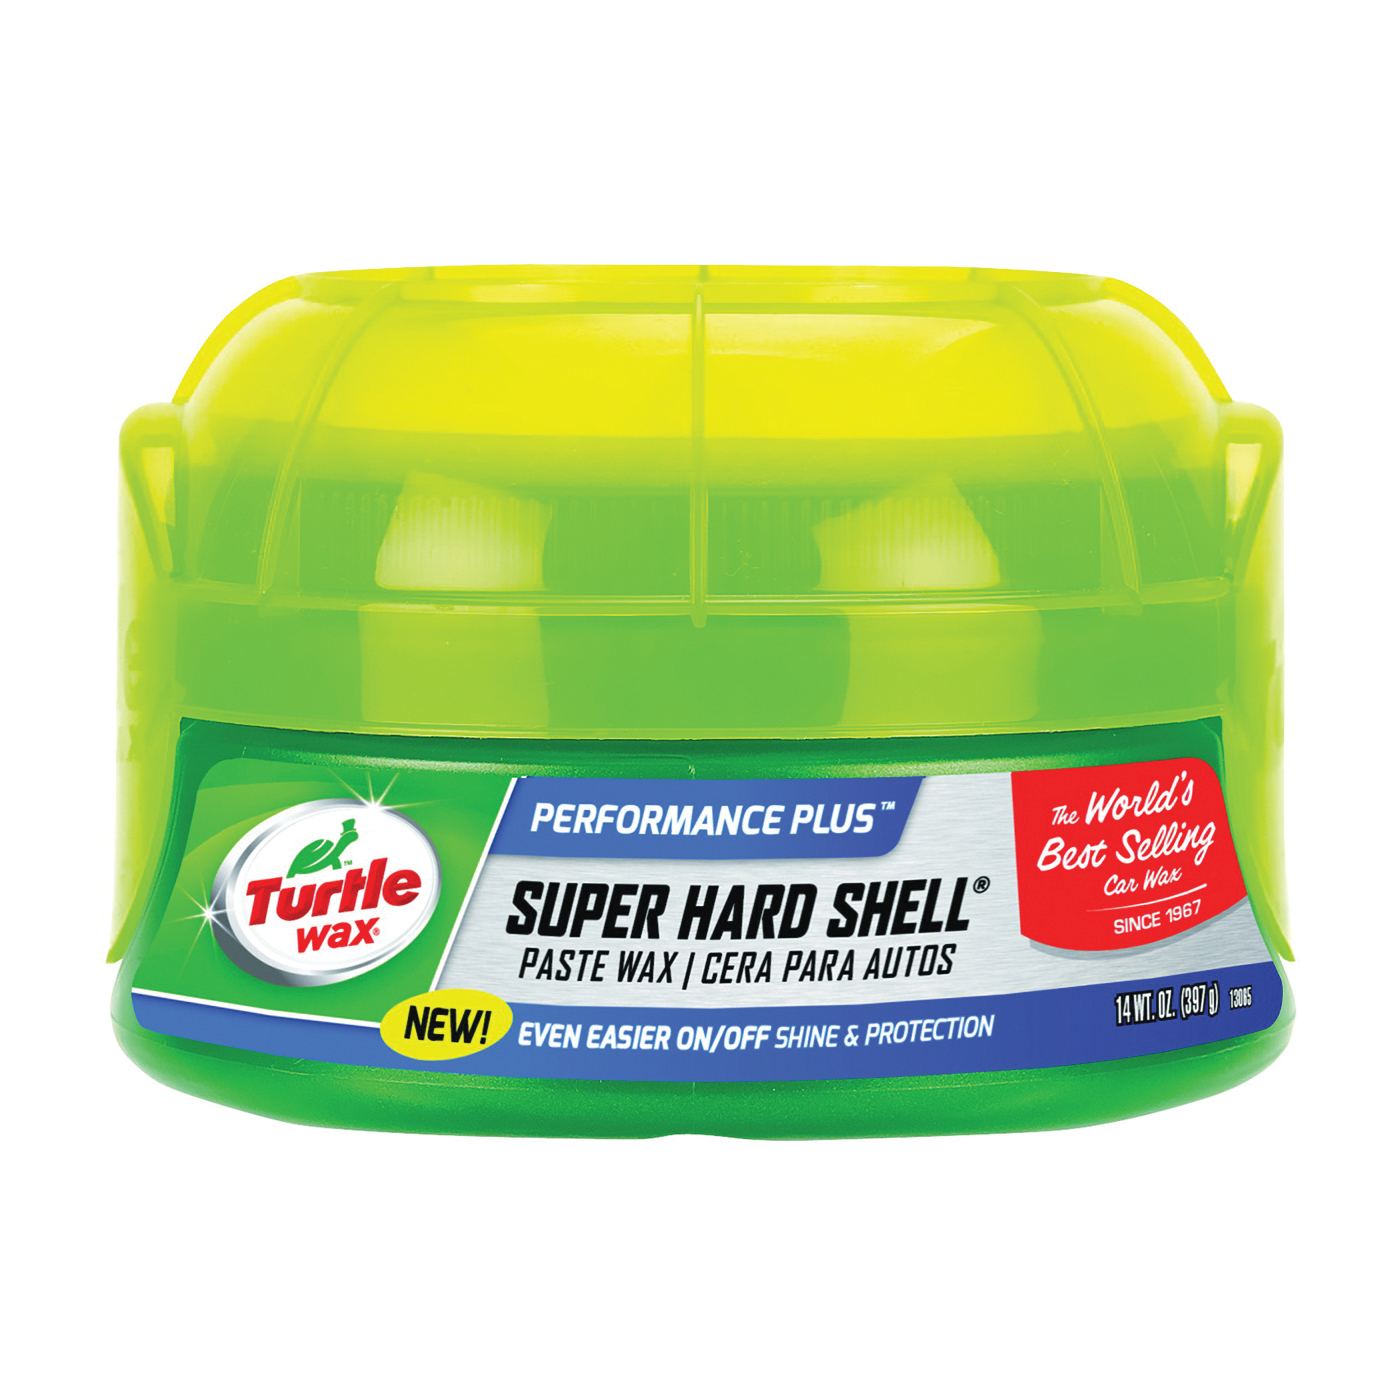 Picture of Turtle Wax SUPER HARD SHELL T222 Car Wax, 14 oz Package, Spray Dispenser, Paste, Typical Solvent